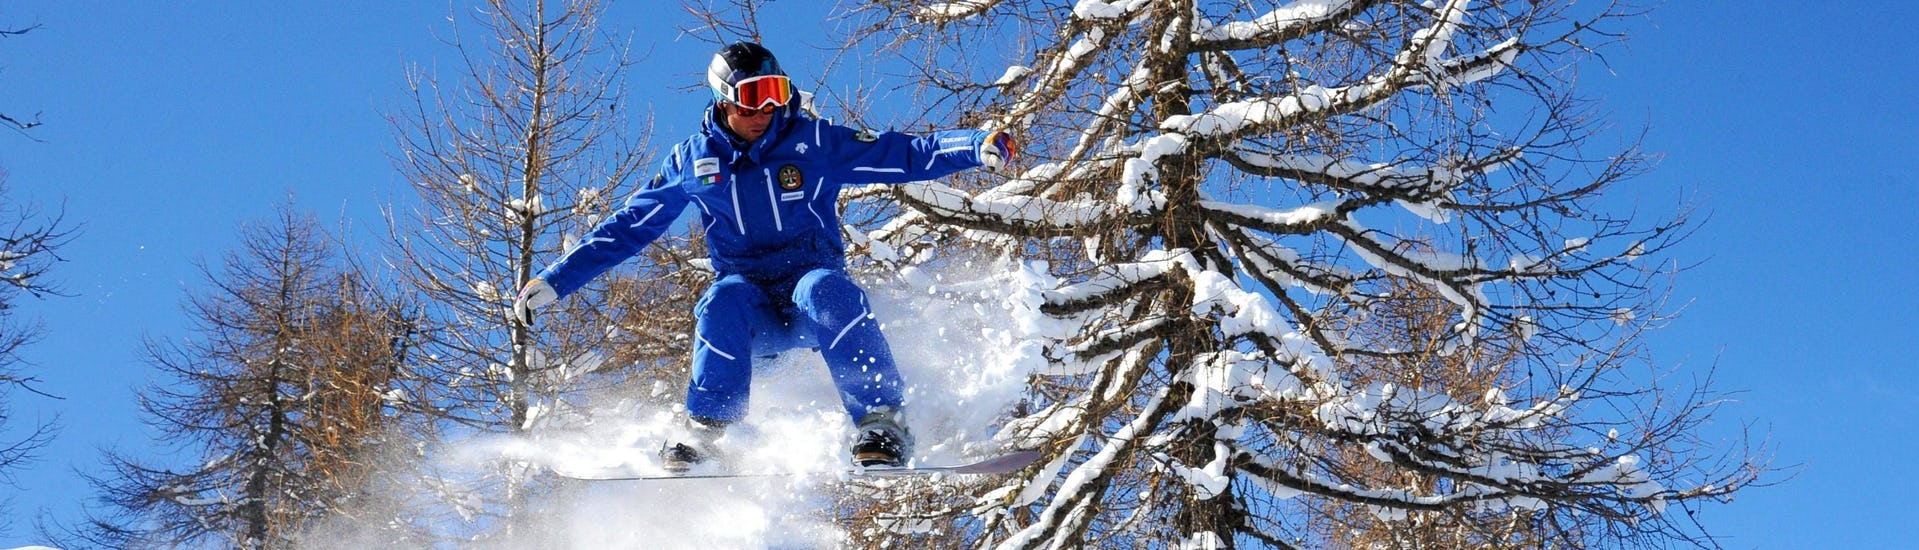 Private Snowboarding Lessons for Kids & Adults - All Levels of the Folgarida Dimaro Ski School are taking place, the snowboard instructor shows the technique on the slopes of Val di Sole.